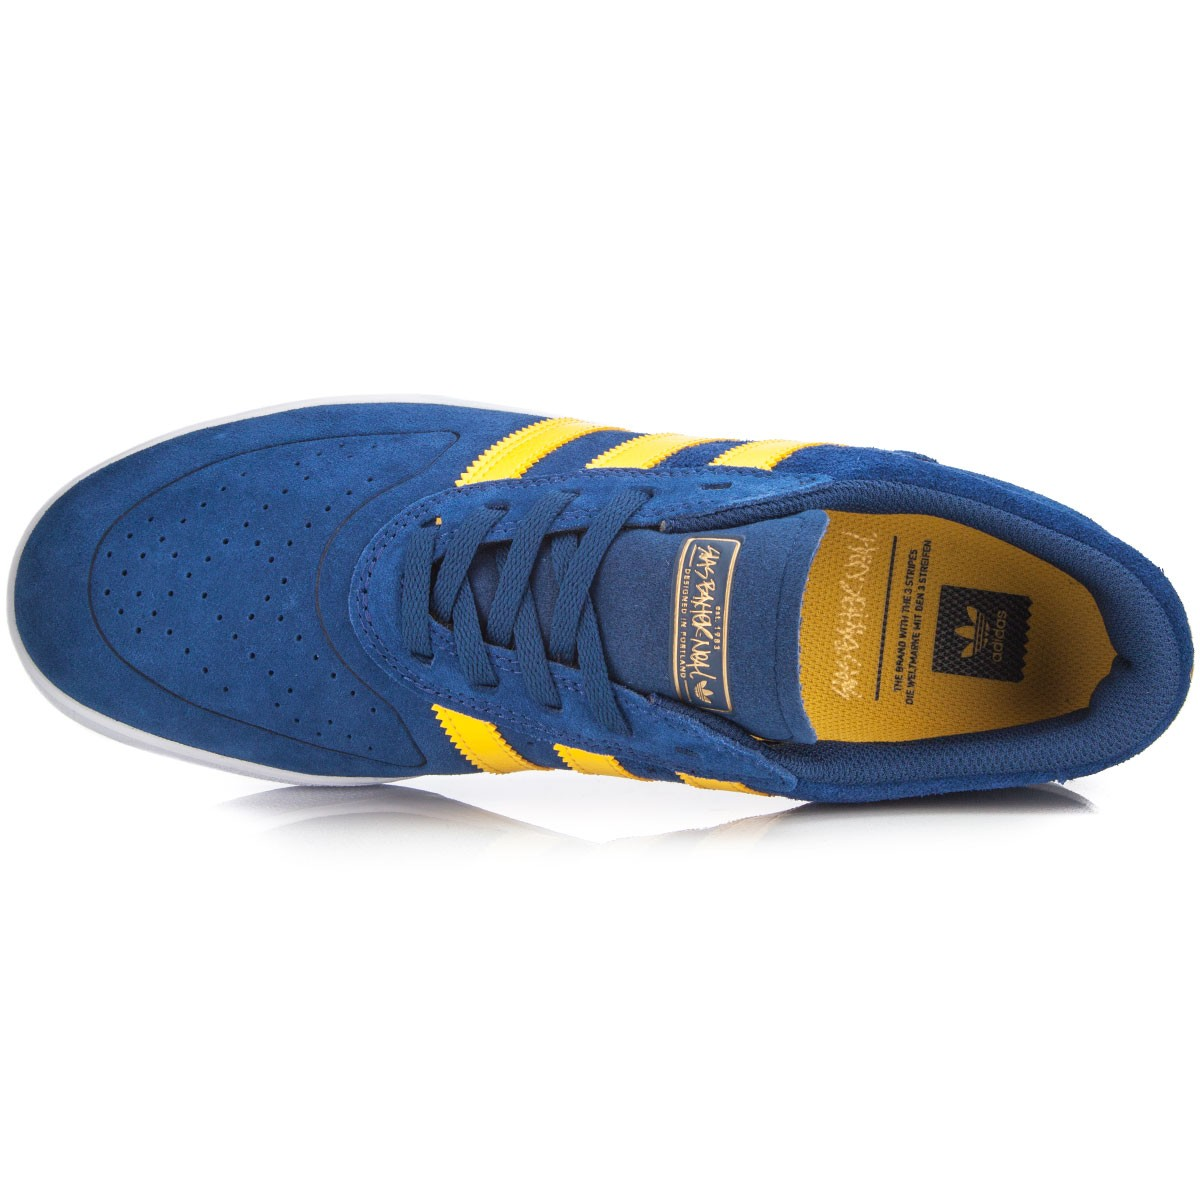 Sano Leve Sustancial  adidas silas vulc adidas originals white and gold shoes